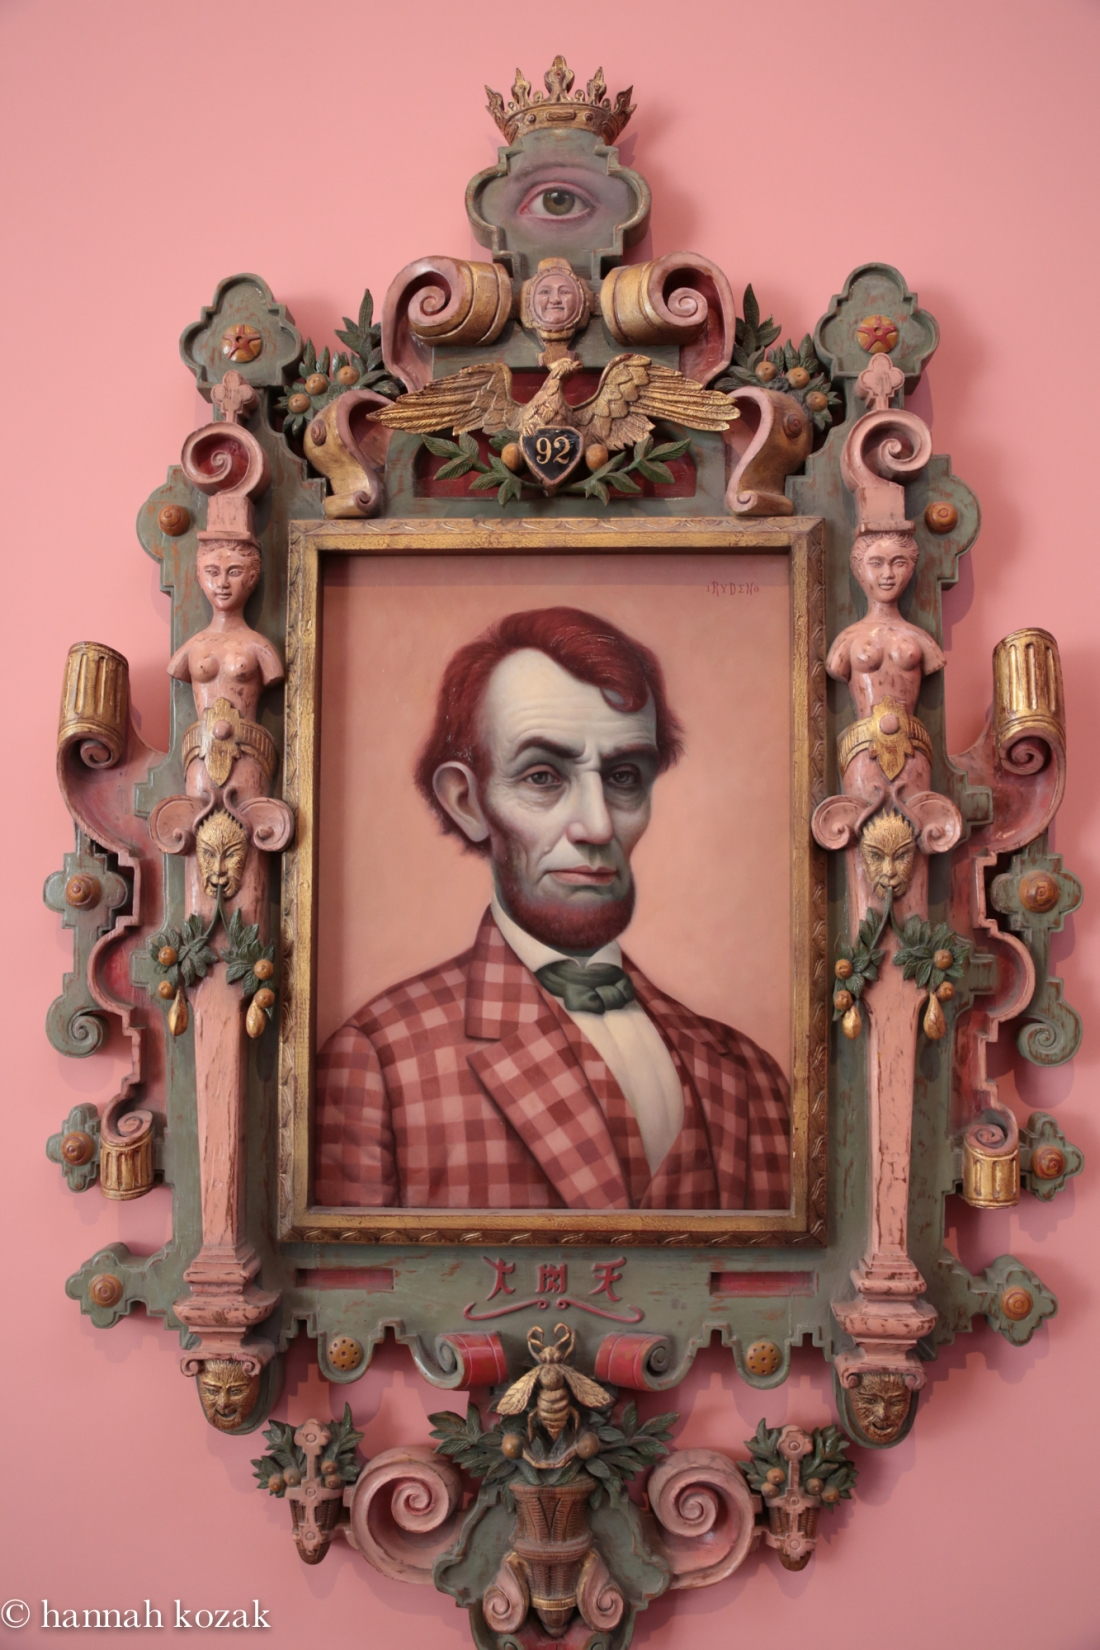 Mark Ryden, Pink Lincoln, 2010, Oil on canvas with artist-designed frame, hand-painted by the artist